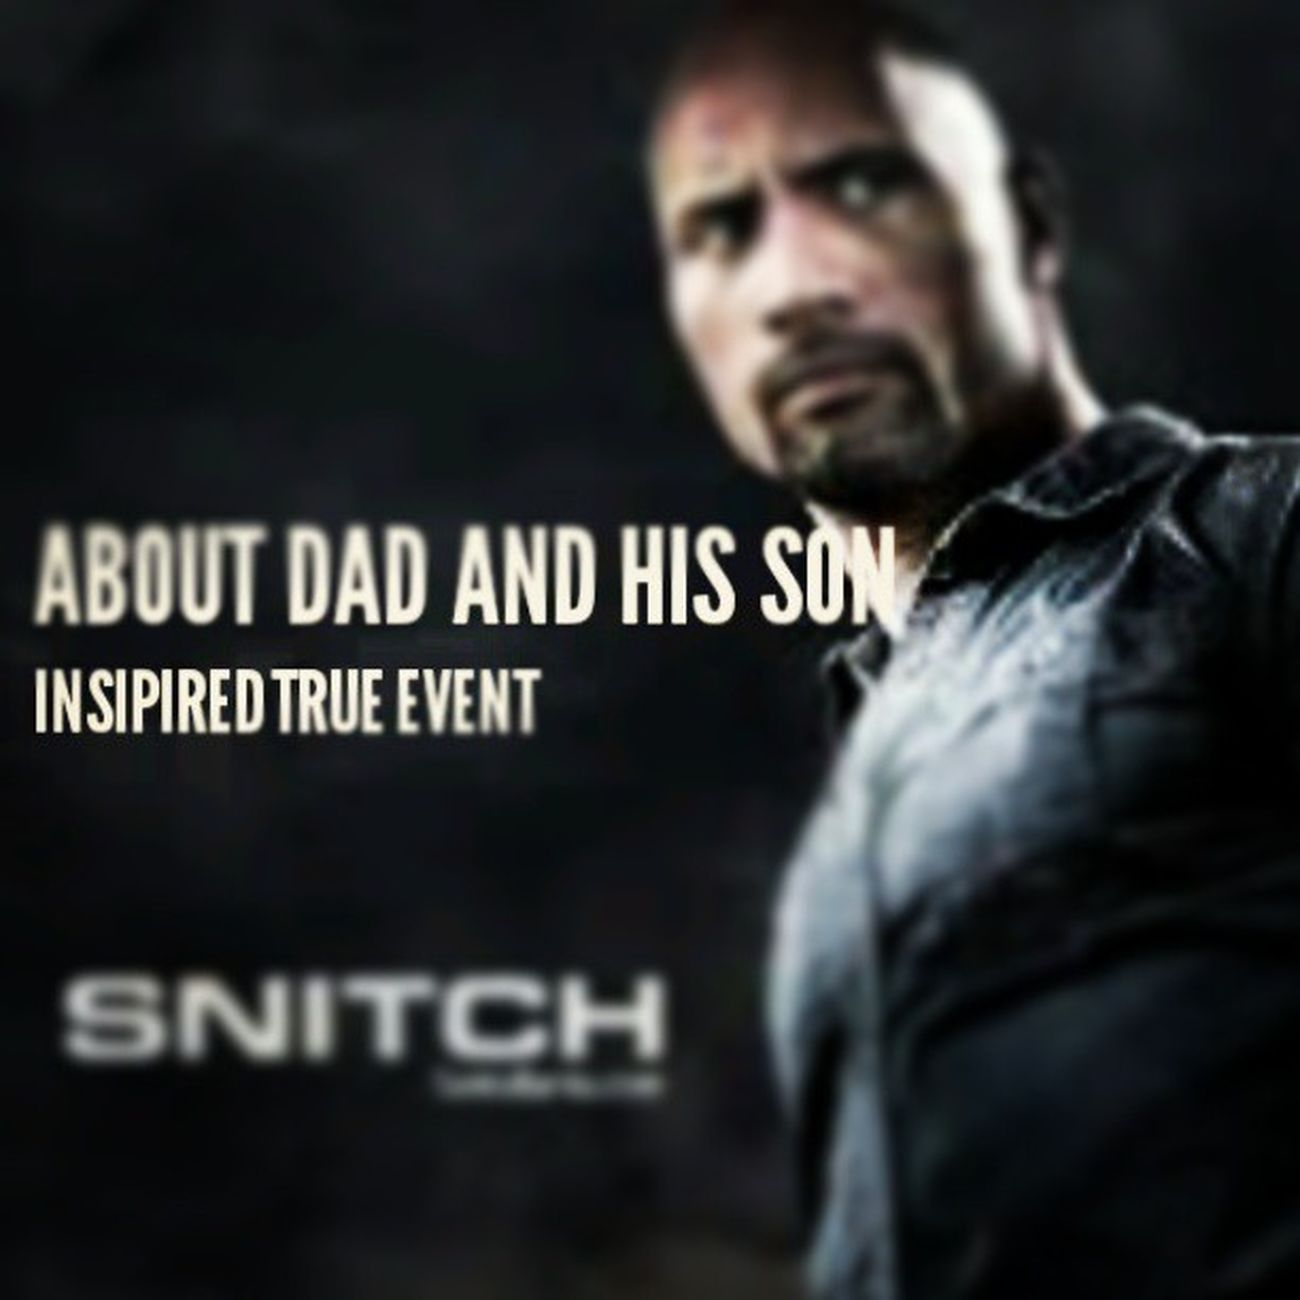 """SNITCH MOVIE"" I definetly Two thumbs up for this movie.... a movie inspired true event. Story about a father who strugle for his son in prison. He do anything for proving his love for him.. God as our Father do anything and the best things for His children... so we have to proud of our Daddy JC and serve him with everything we got. He is worthy to be praise is'nt He?? Snitchmovie Snicth Fatherlove"